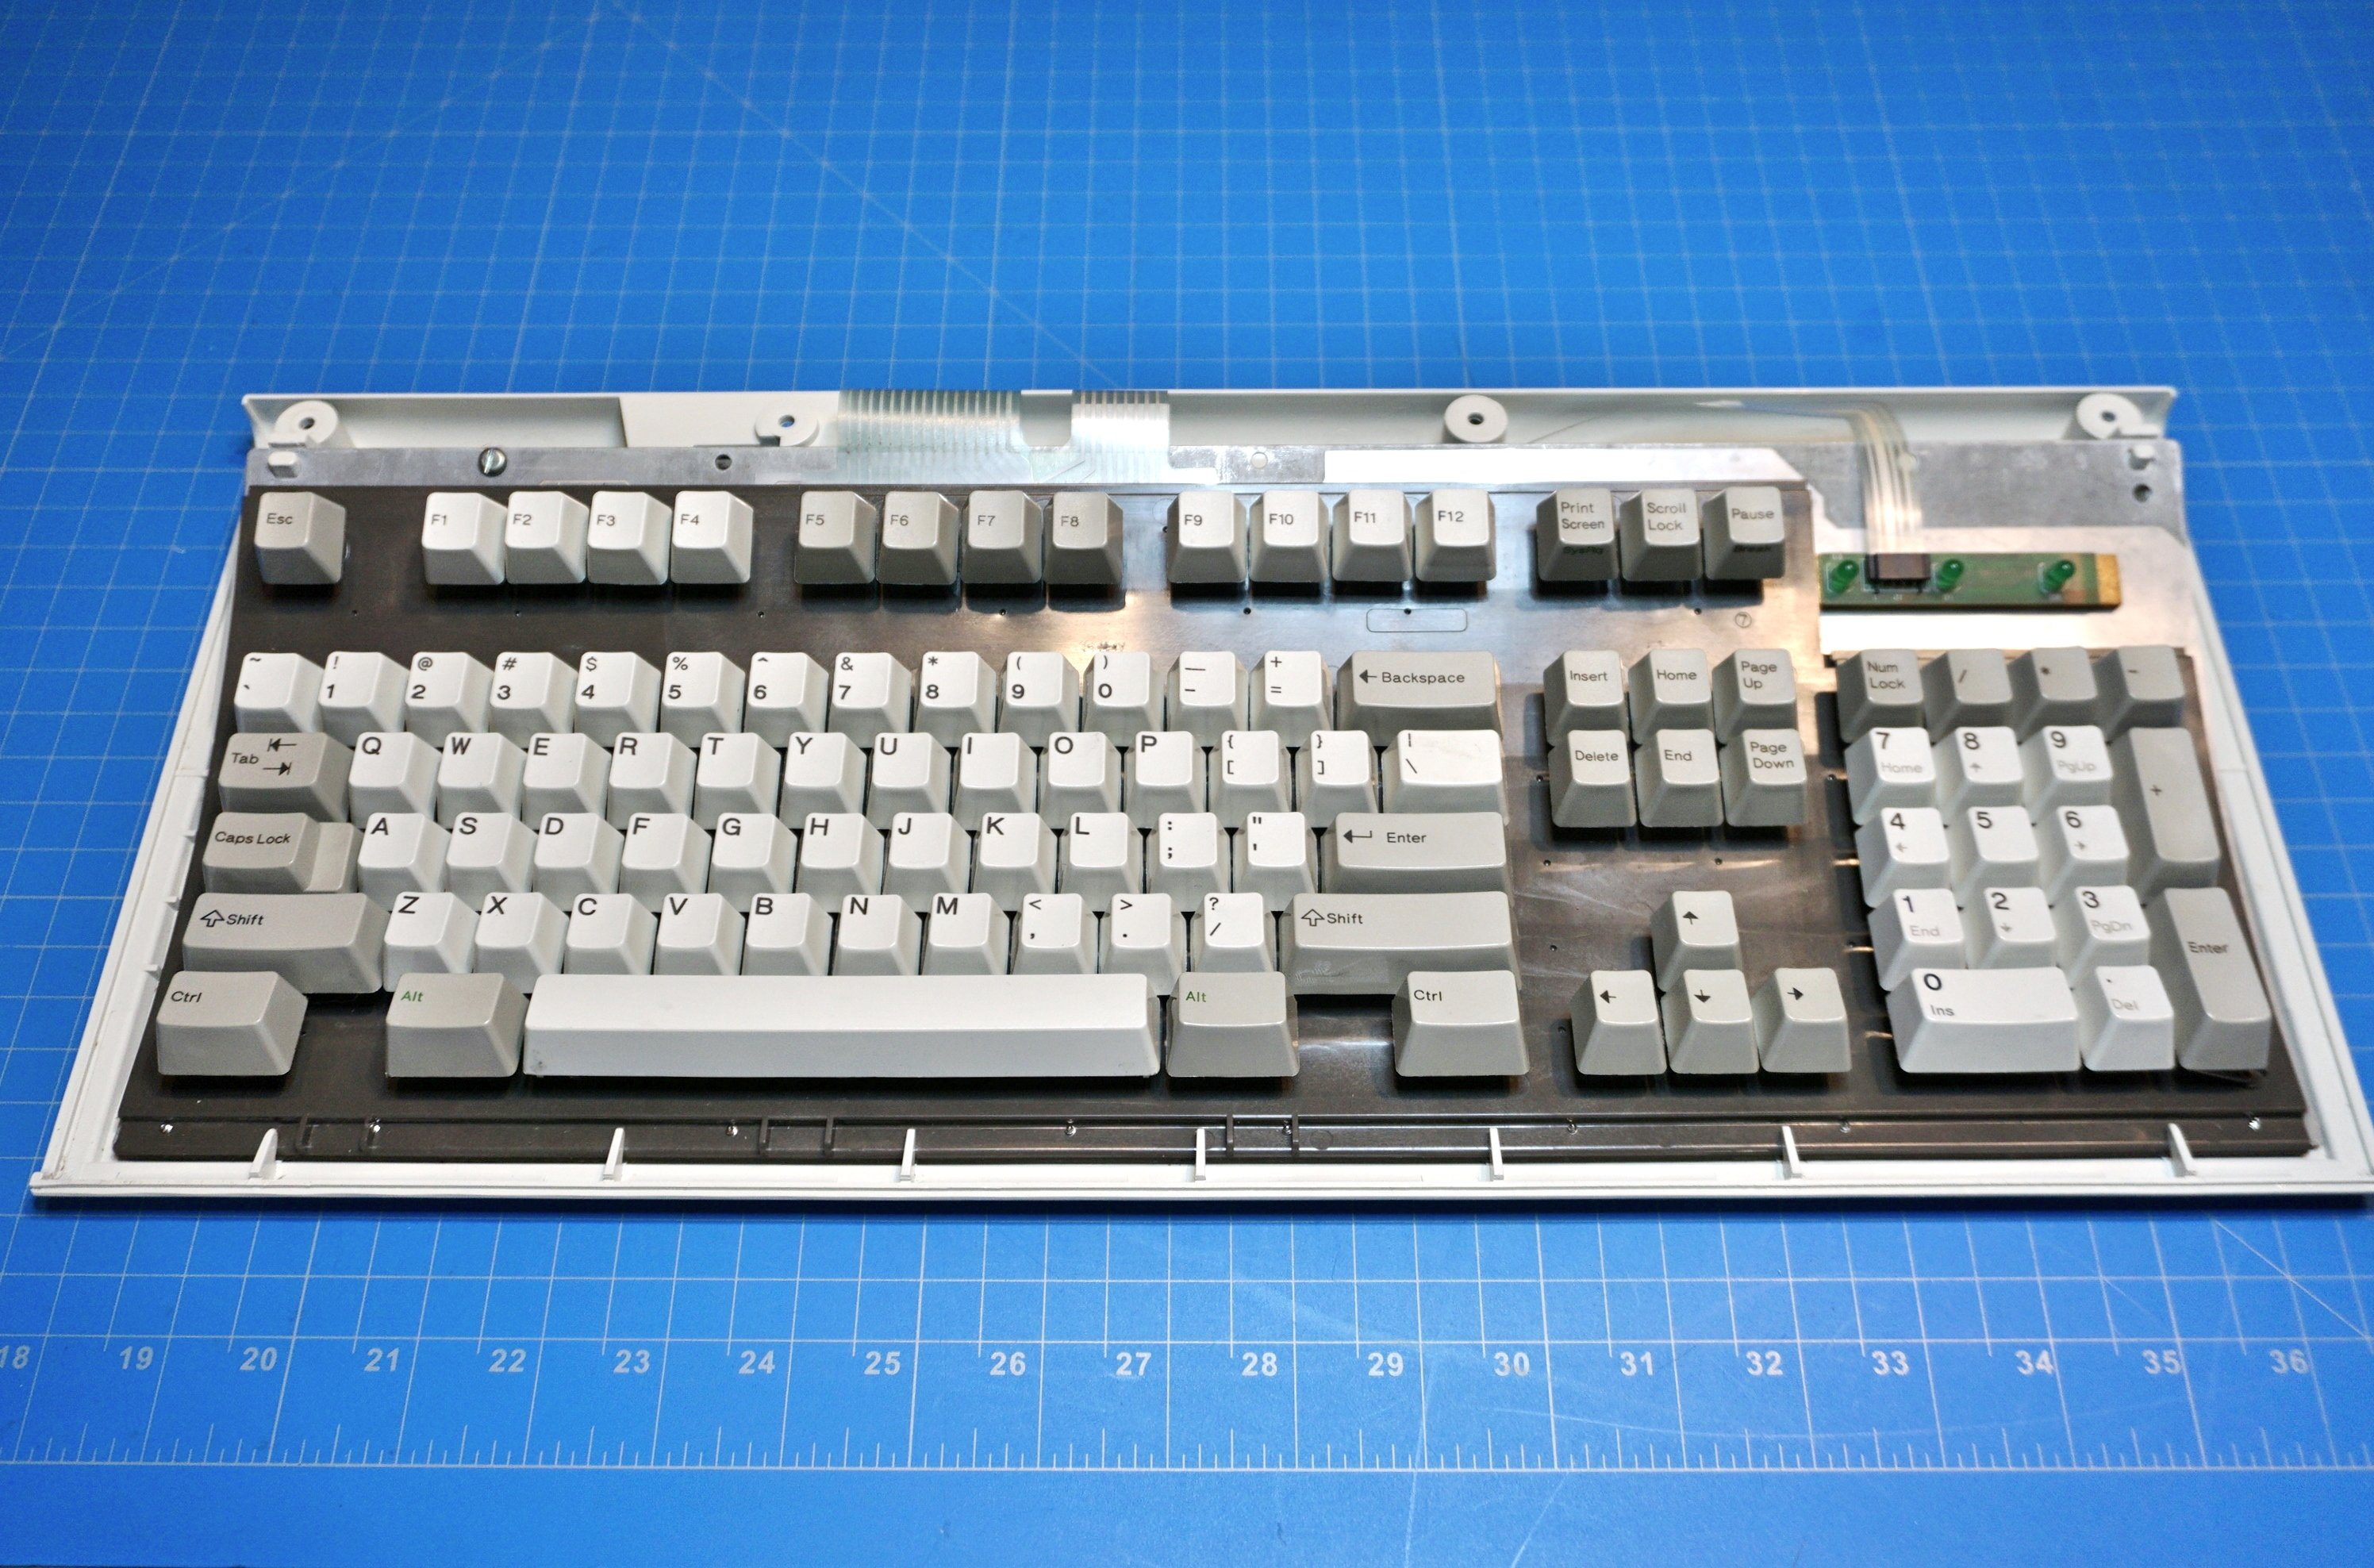 63cb9844292 1988 IBM model M (1391401) Made by IBM 29 JAN 88 – ClickyKeyboards